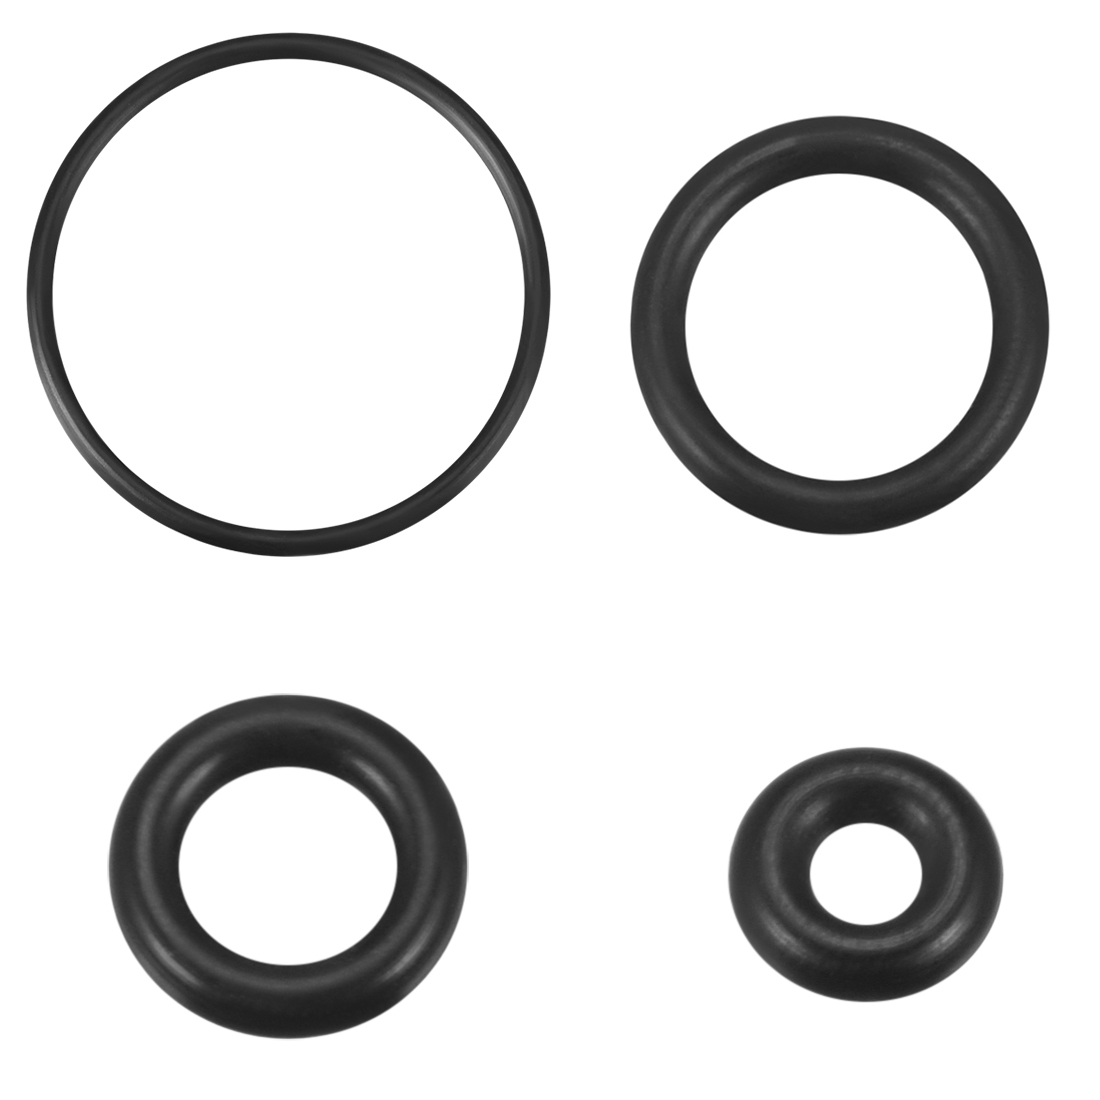 uxcell/® O-Rings Nitrile Rubber 2mm Width Pack of 50 7mm Inner Diameter Round Seal Gasket 11mm OD